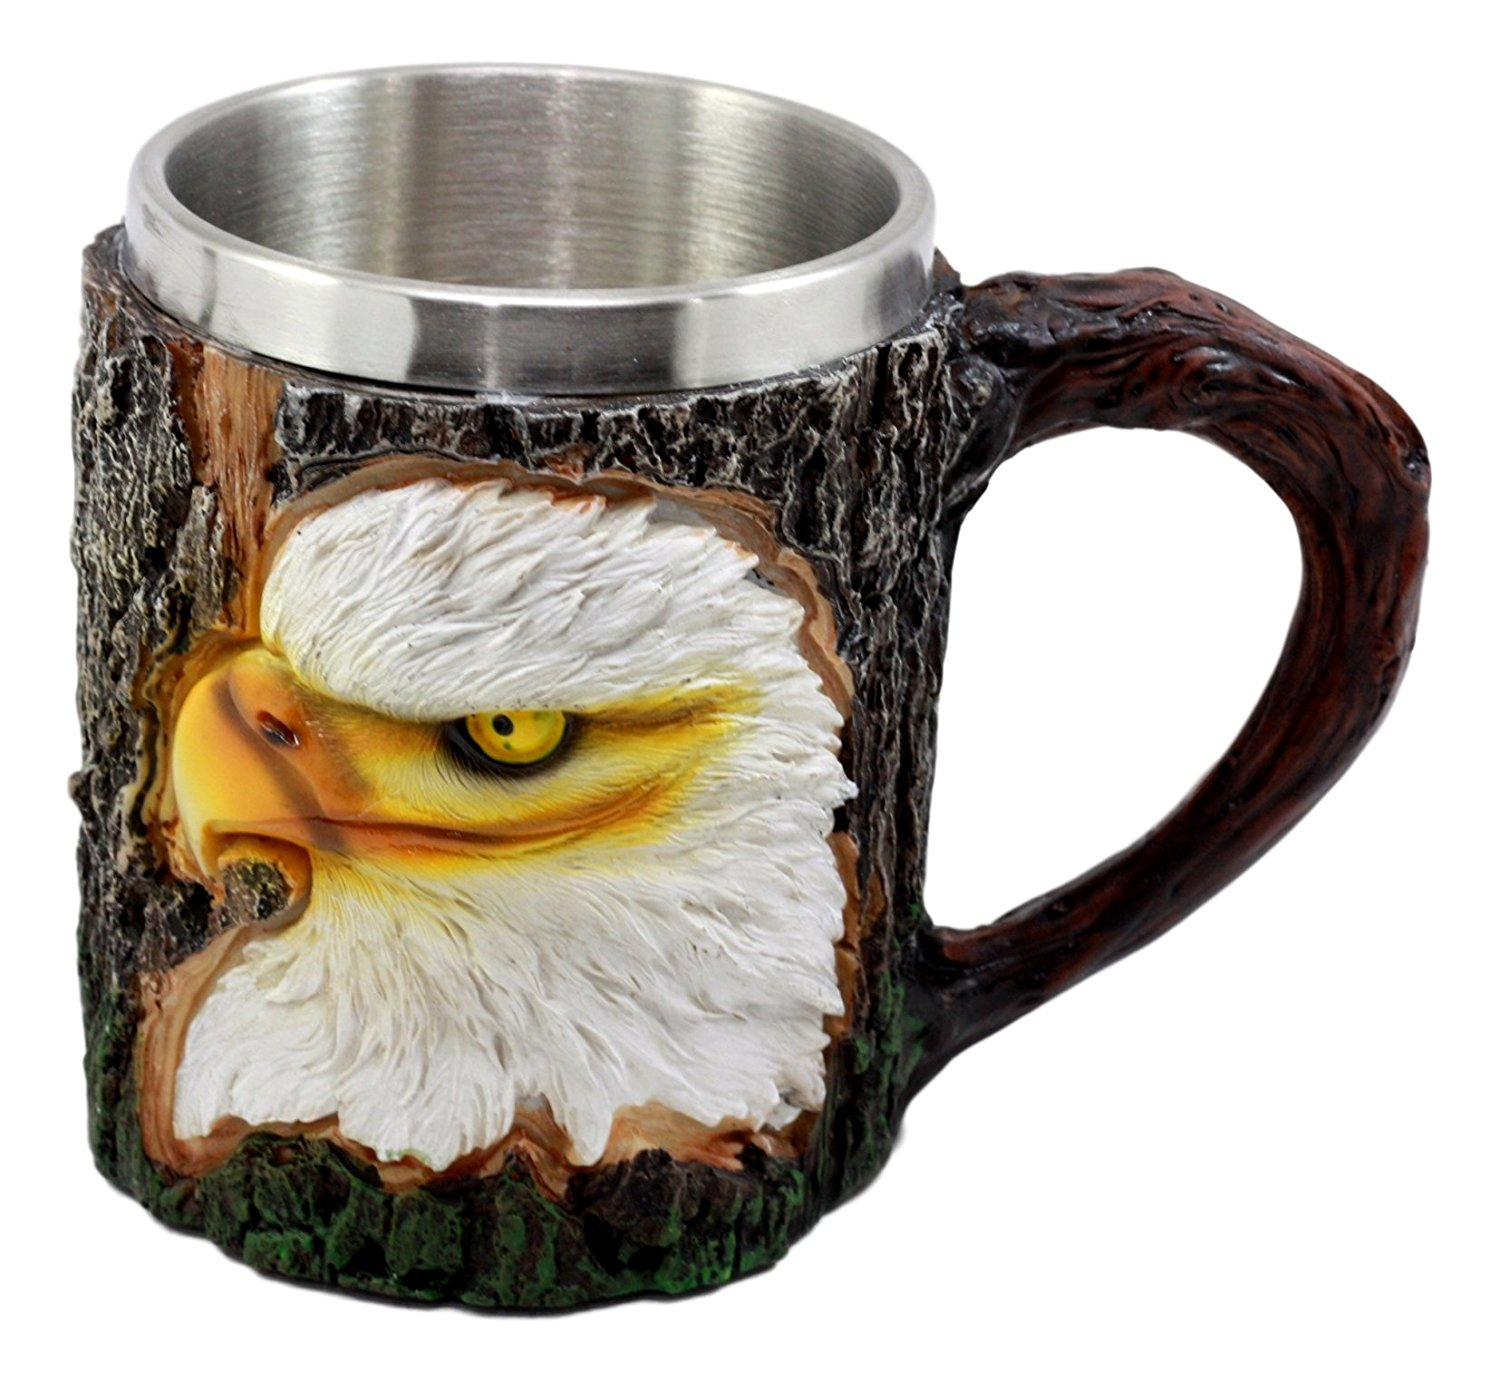 Ebros Nature Wildlife Bald Eagle Coffee Mug With Rustic Tree Bark Design 12oz Drink Beer Stein Tankard Cup